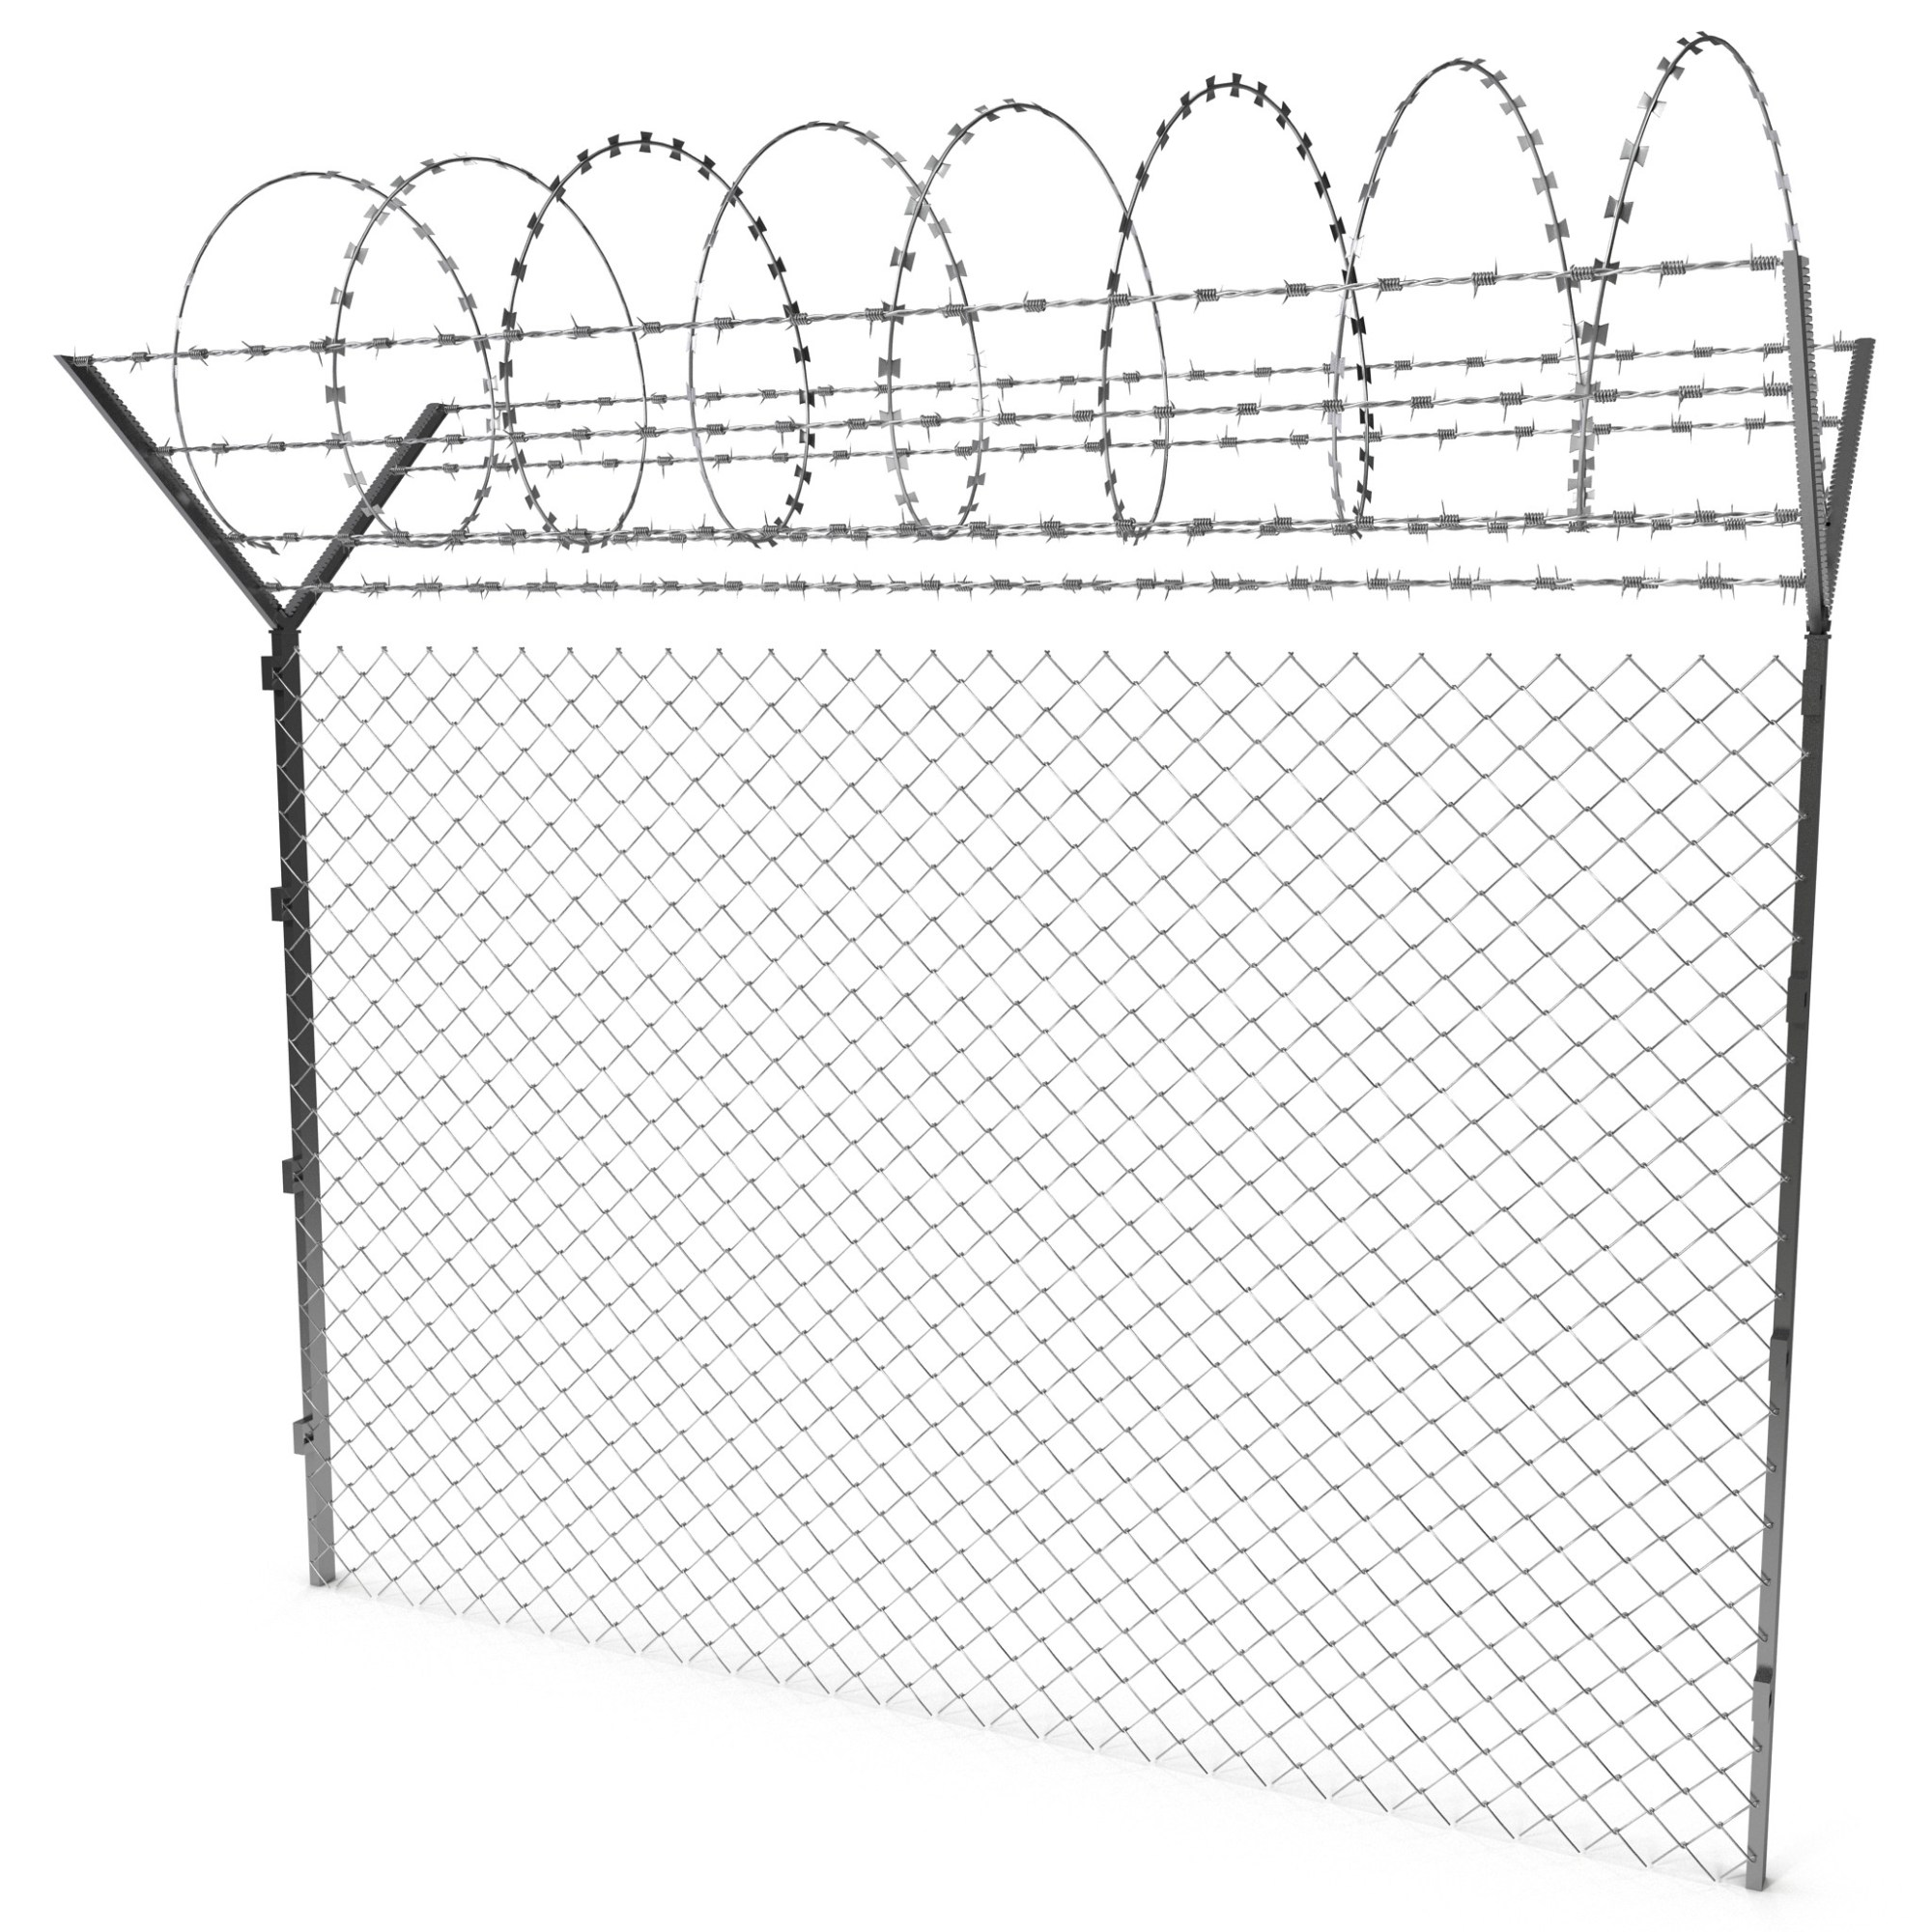 hight resolution of 2048x2048 fence best barb wire fence pictures how to build a welded wire wire fence